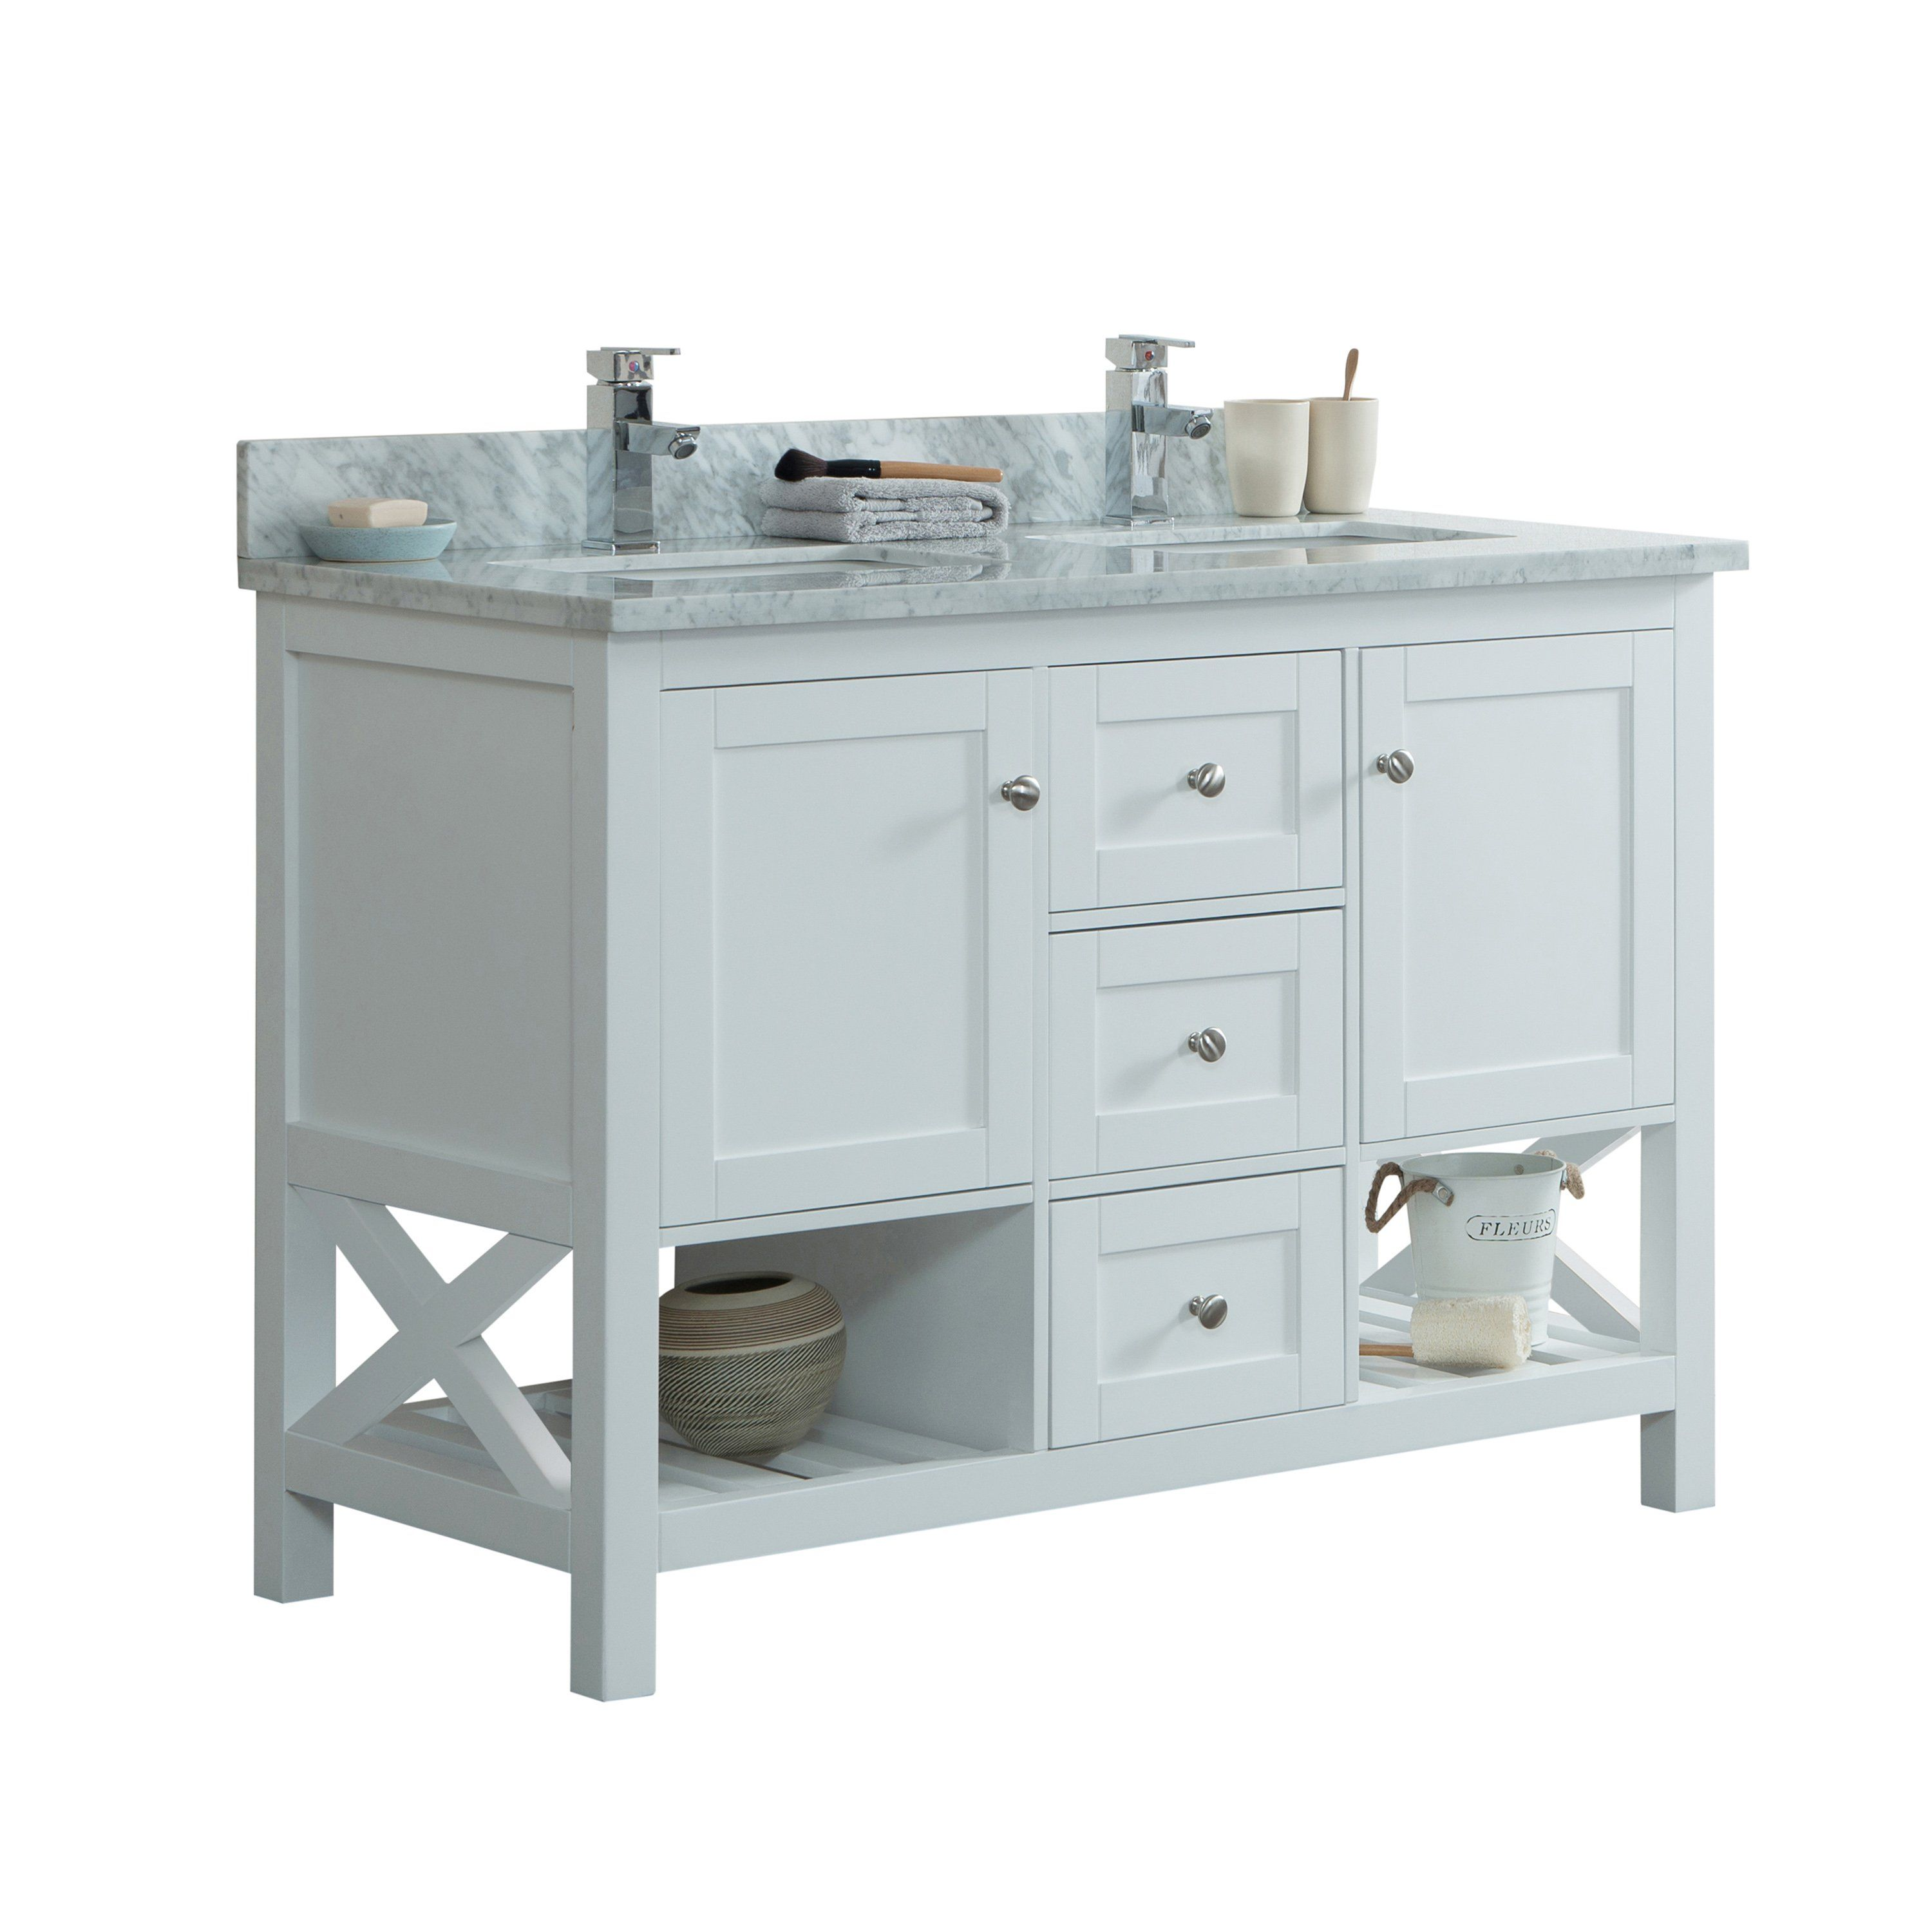 48 Taiya Bathroom Vanity In Toga White Double Sink Broadway Vanities Bathroom Vanities For Sale Vanity Tops With Sink Blue Bathroom Accessories